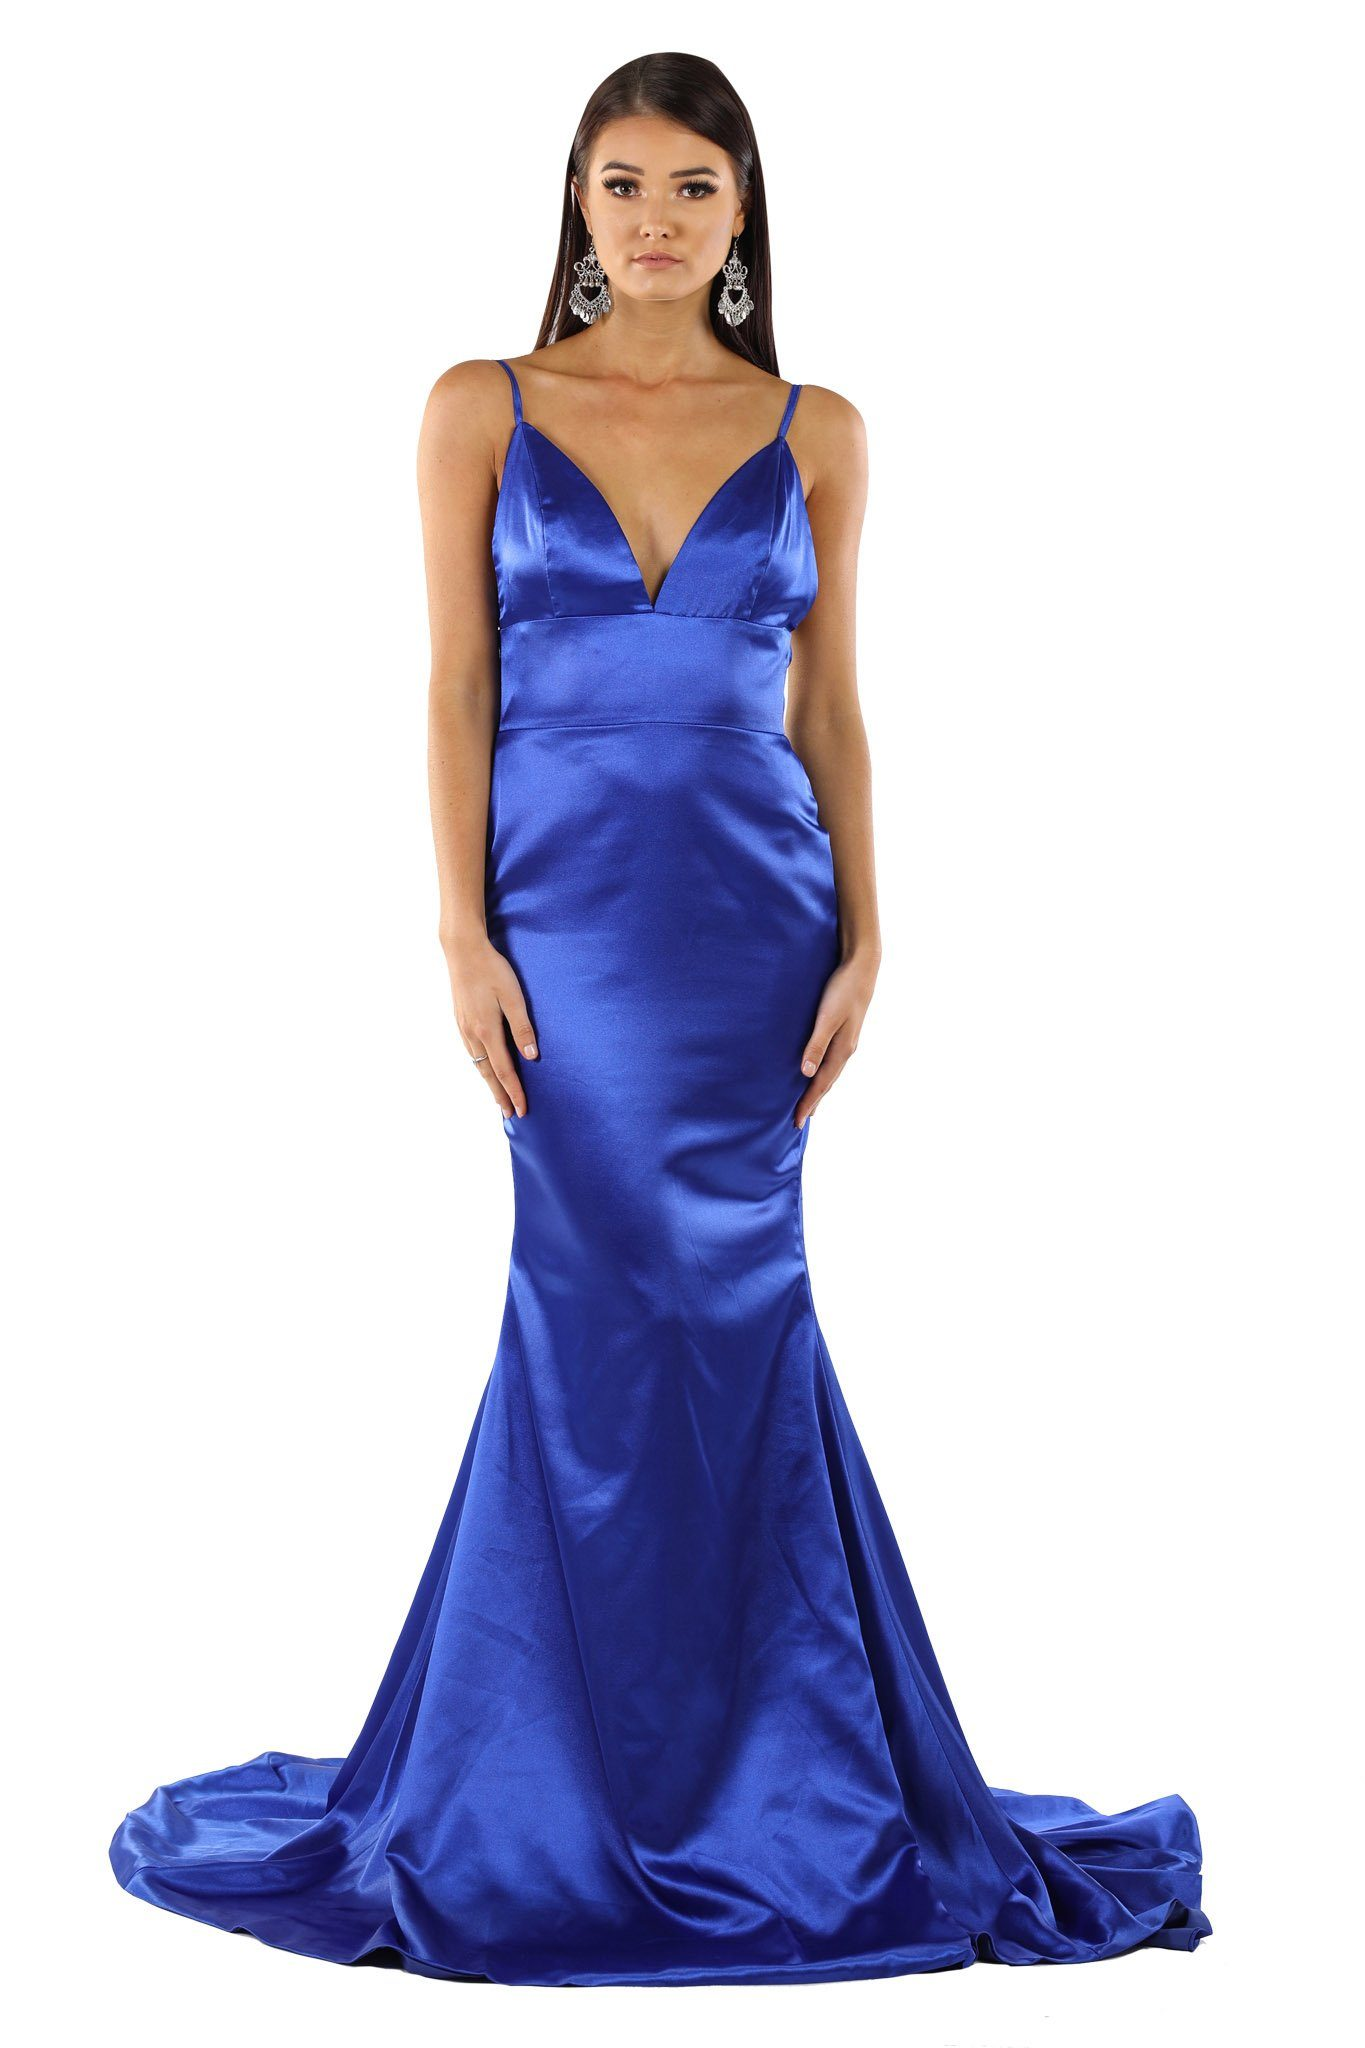 Royal Blue Satin Formal Long Dress with deep V neckline, thin shoulder straps, open V back, floor sweep train